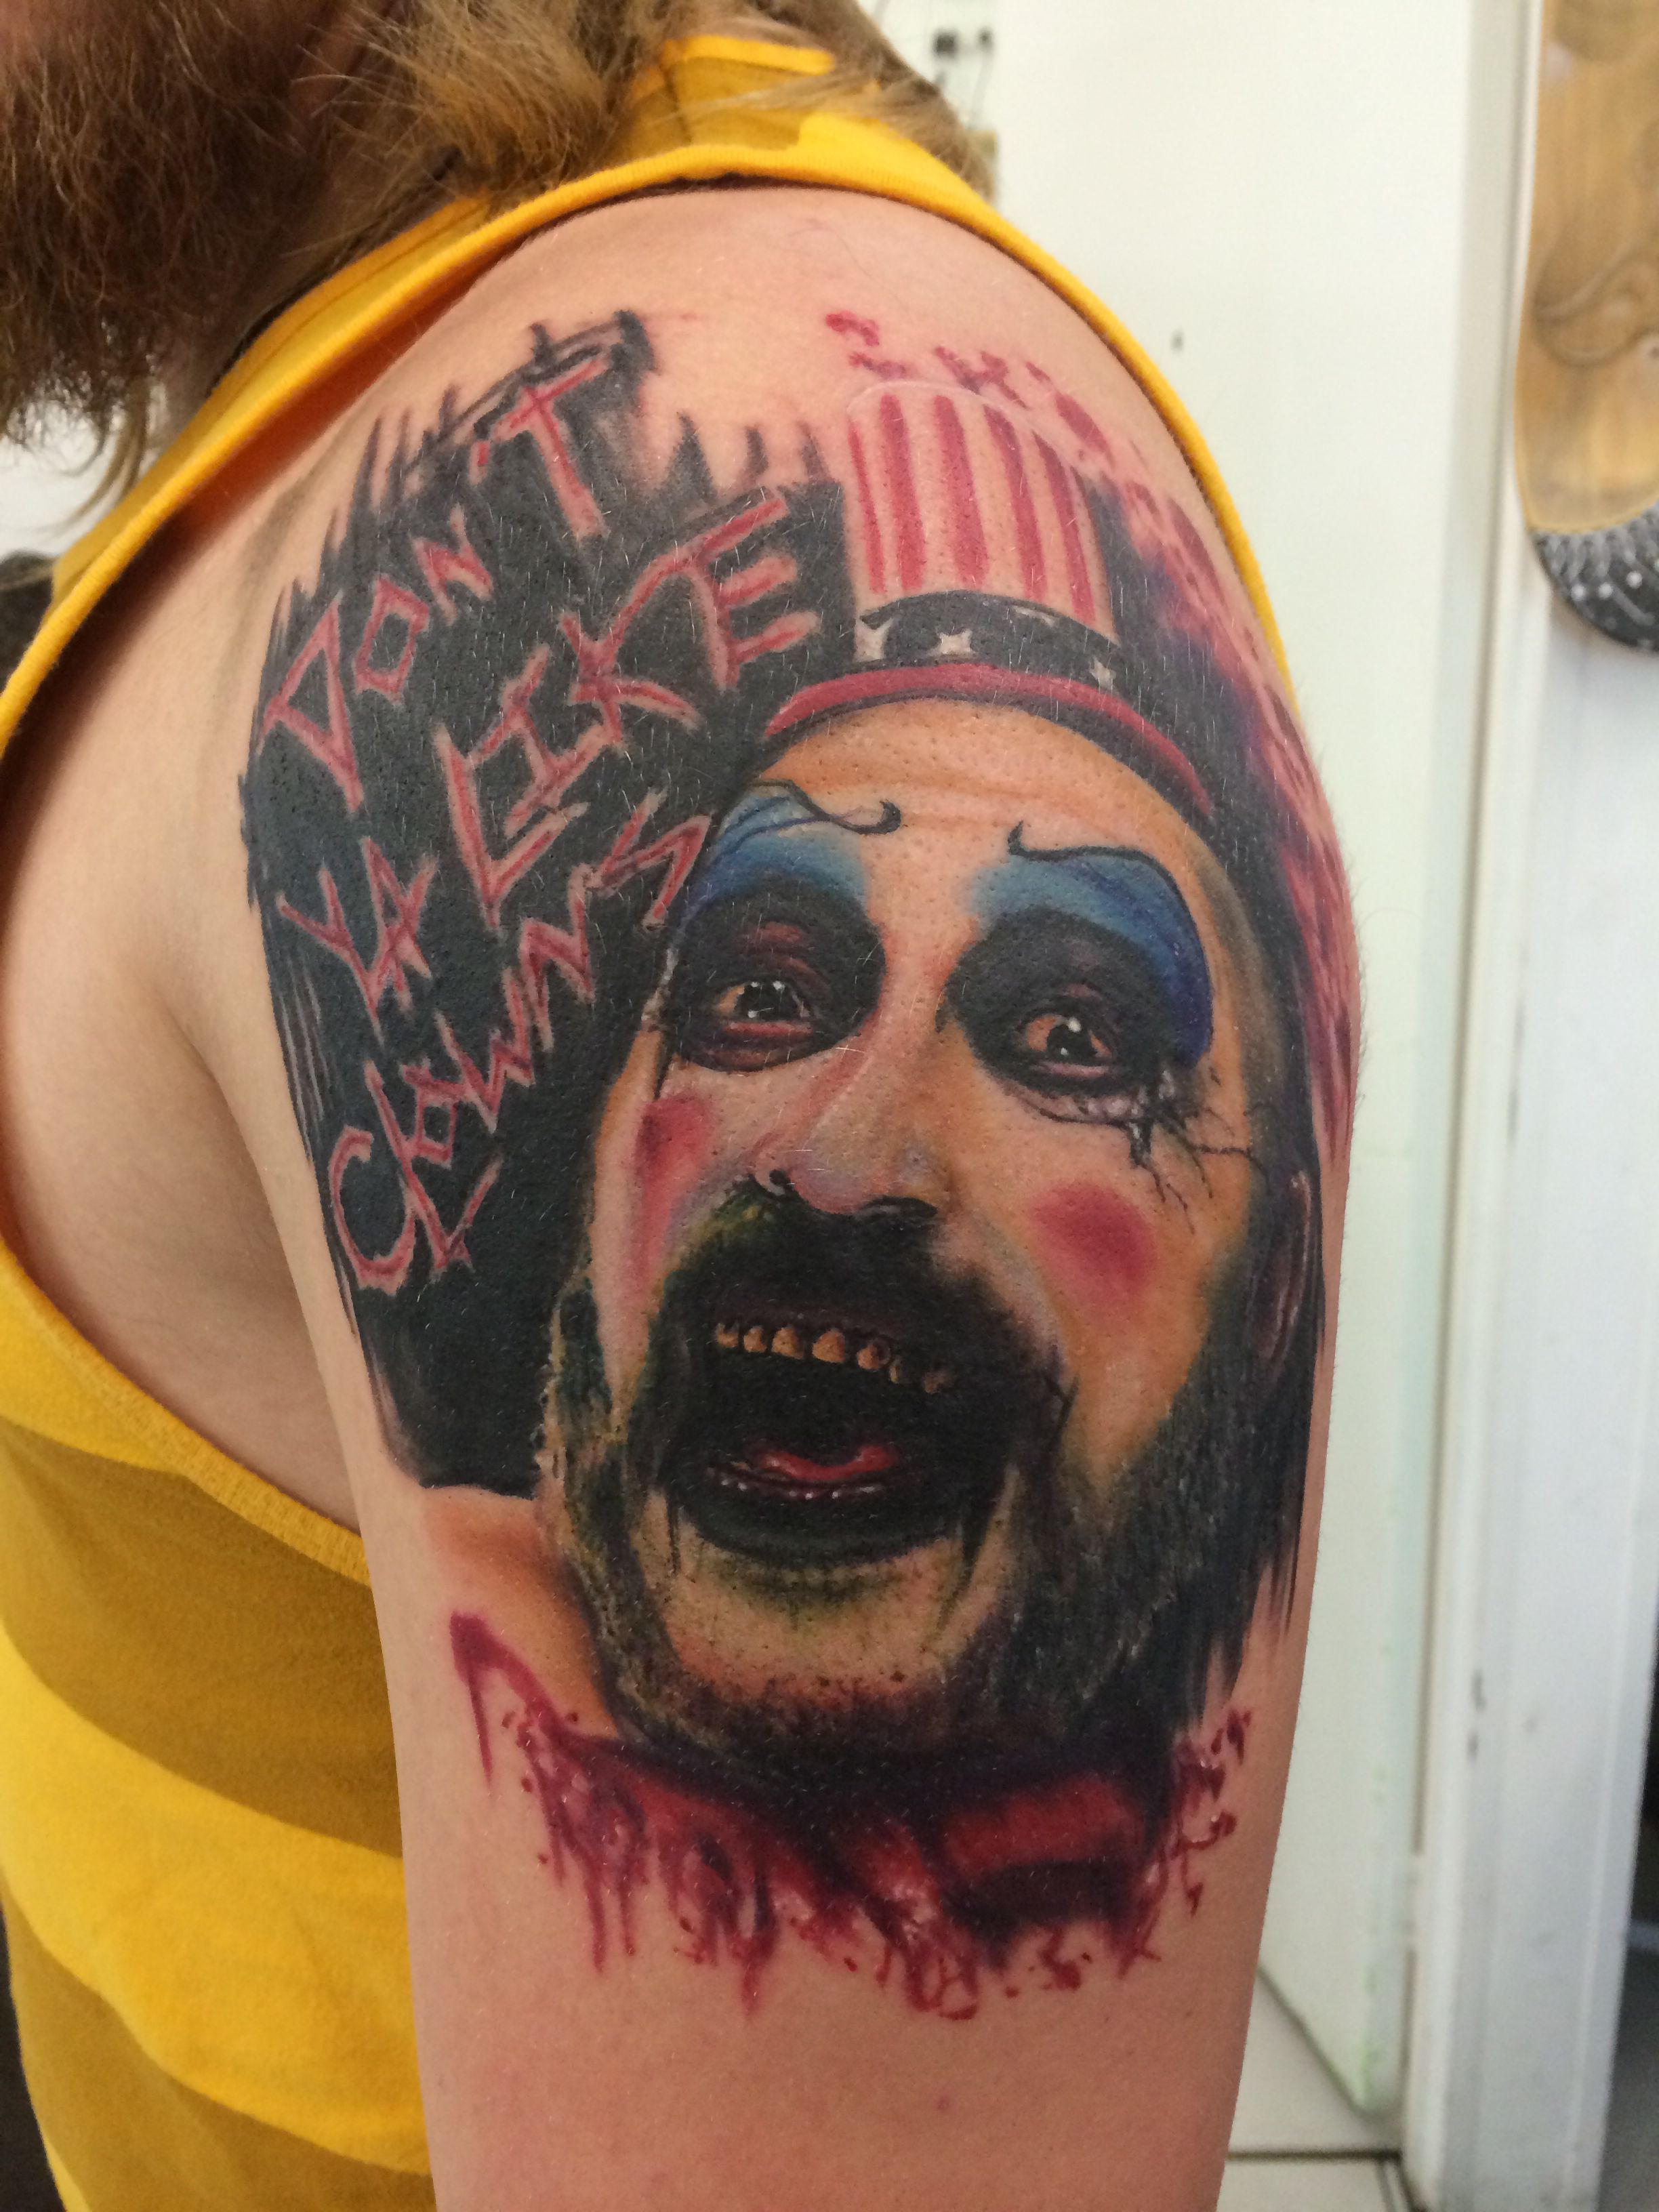 New house of 1000 corpses / devils rejects tattoo yes